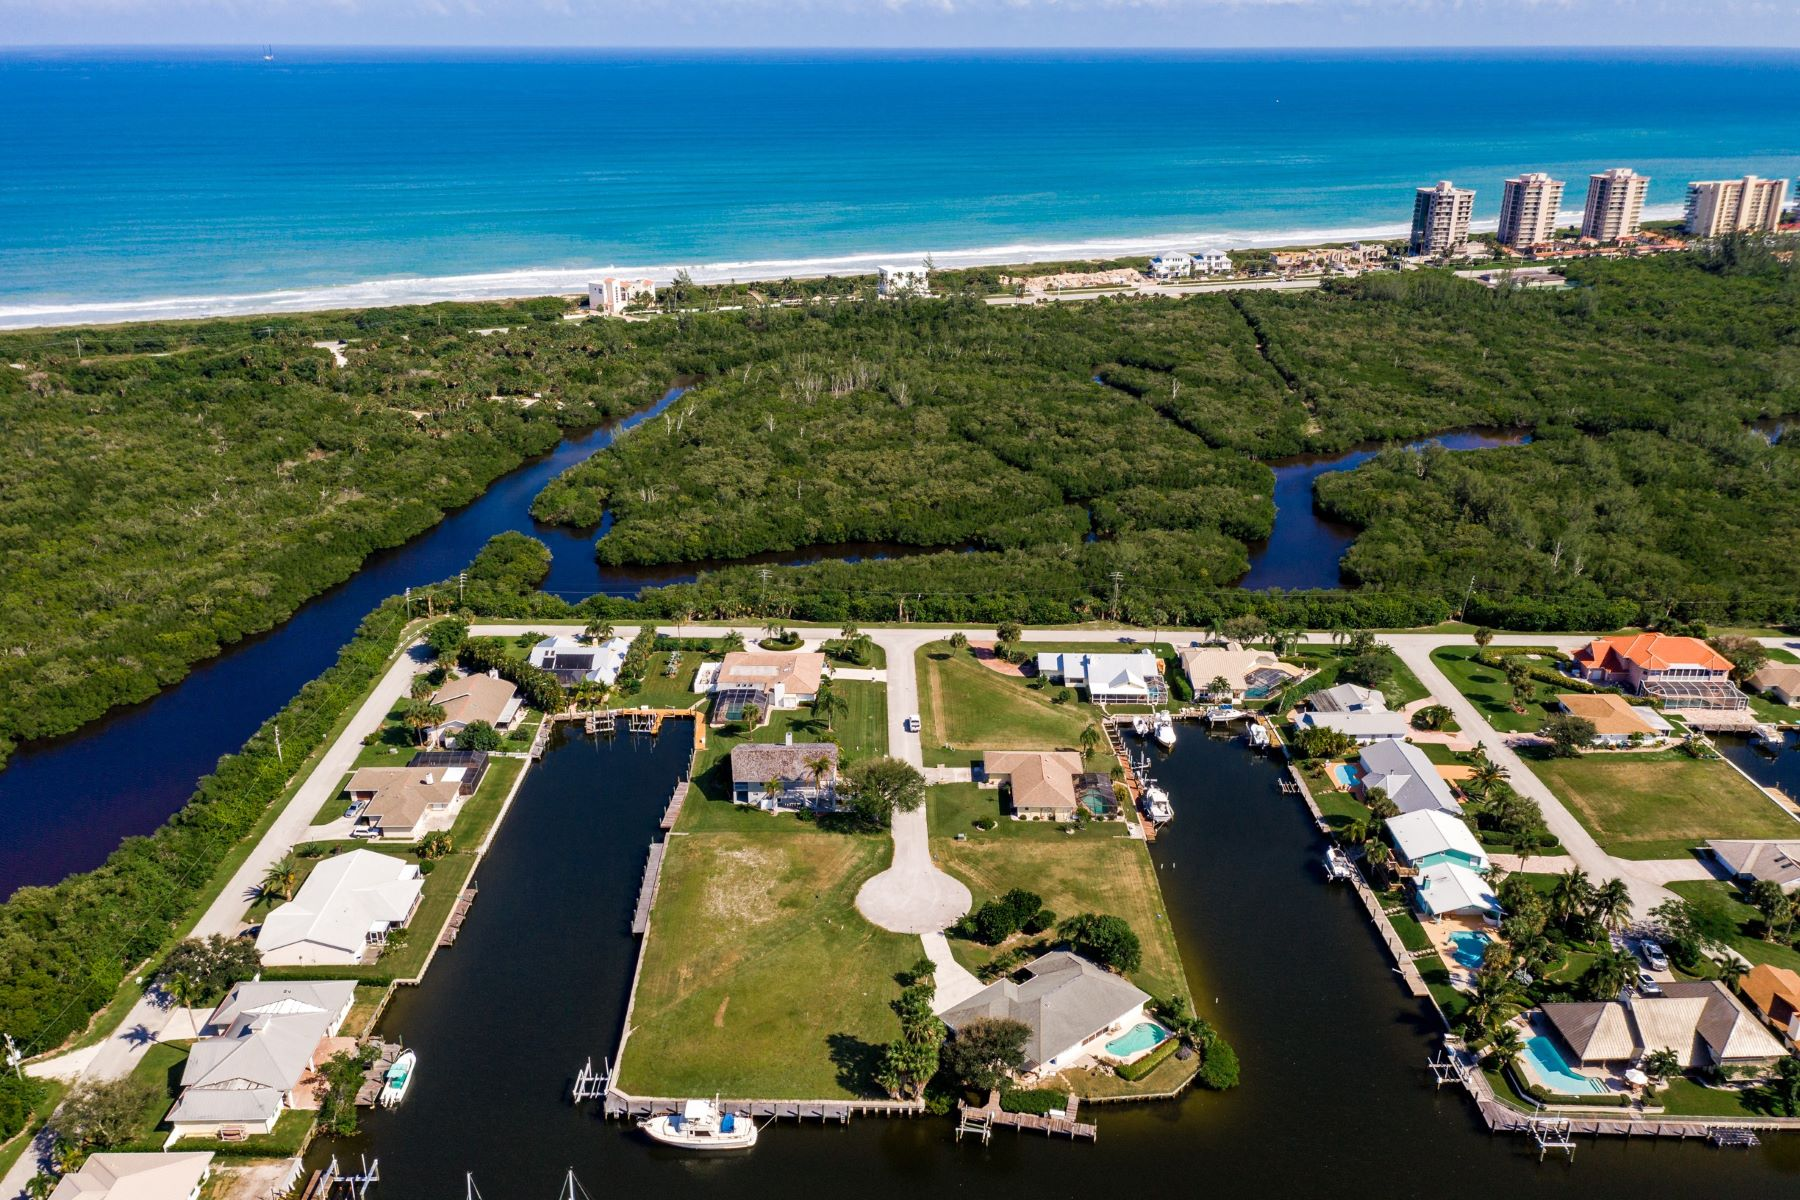 Property for Sale at 15 Crown Court Hutchinson Island, Florida 34949 United States